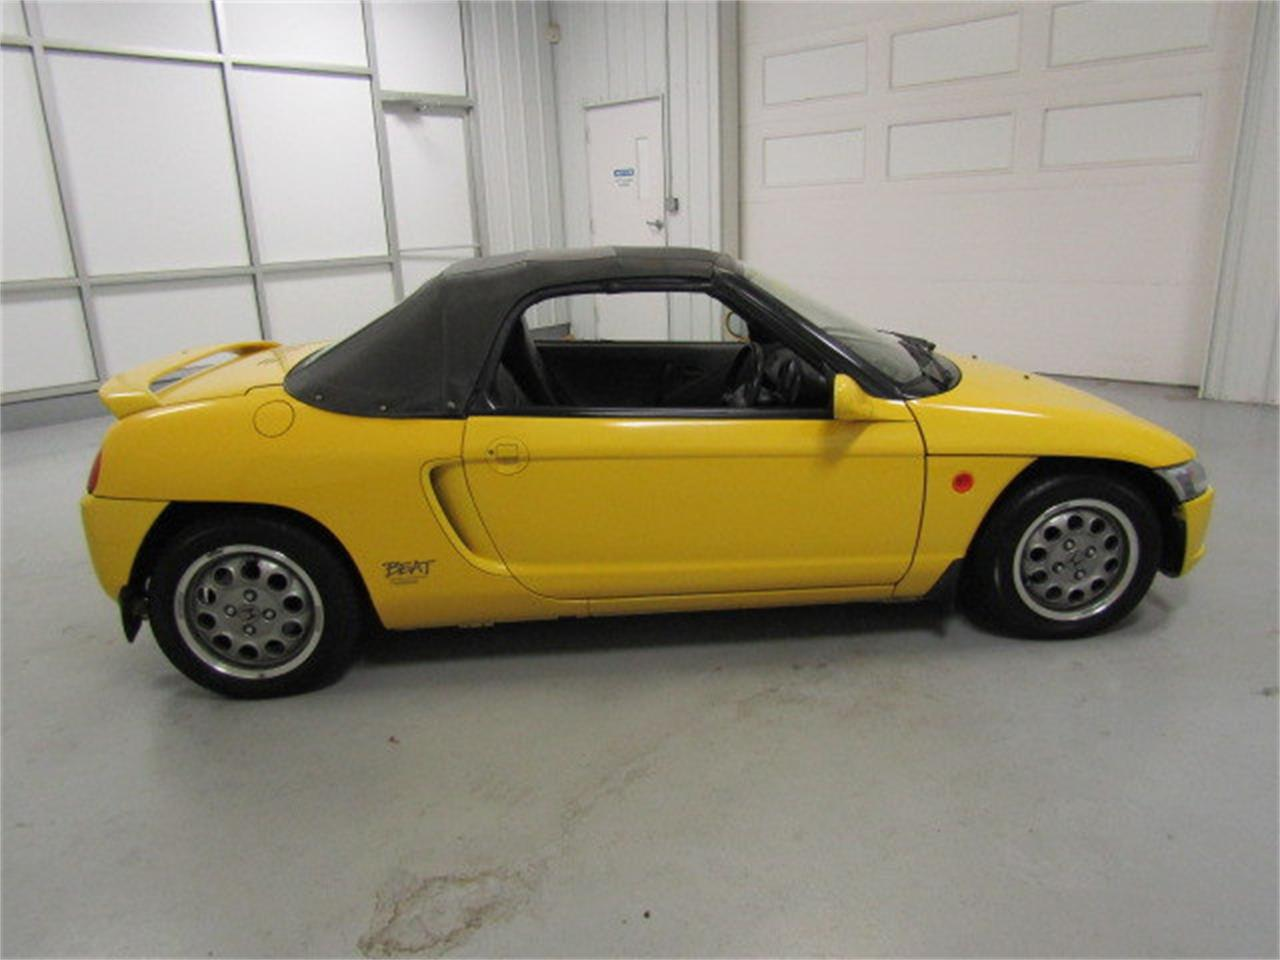 Large Picture of '91 Beat located in Virginia - $6,990.00 Offered by Duncan Imports & Classic Cars - JQ0U